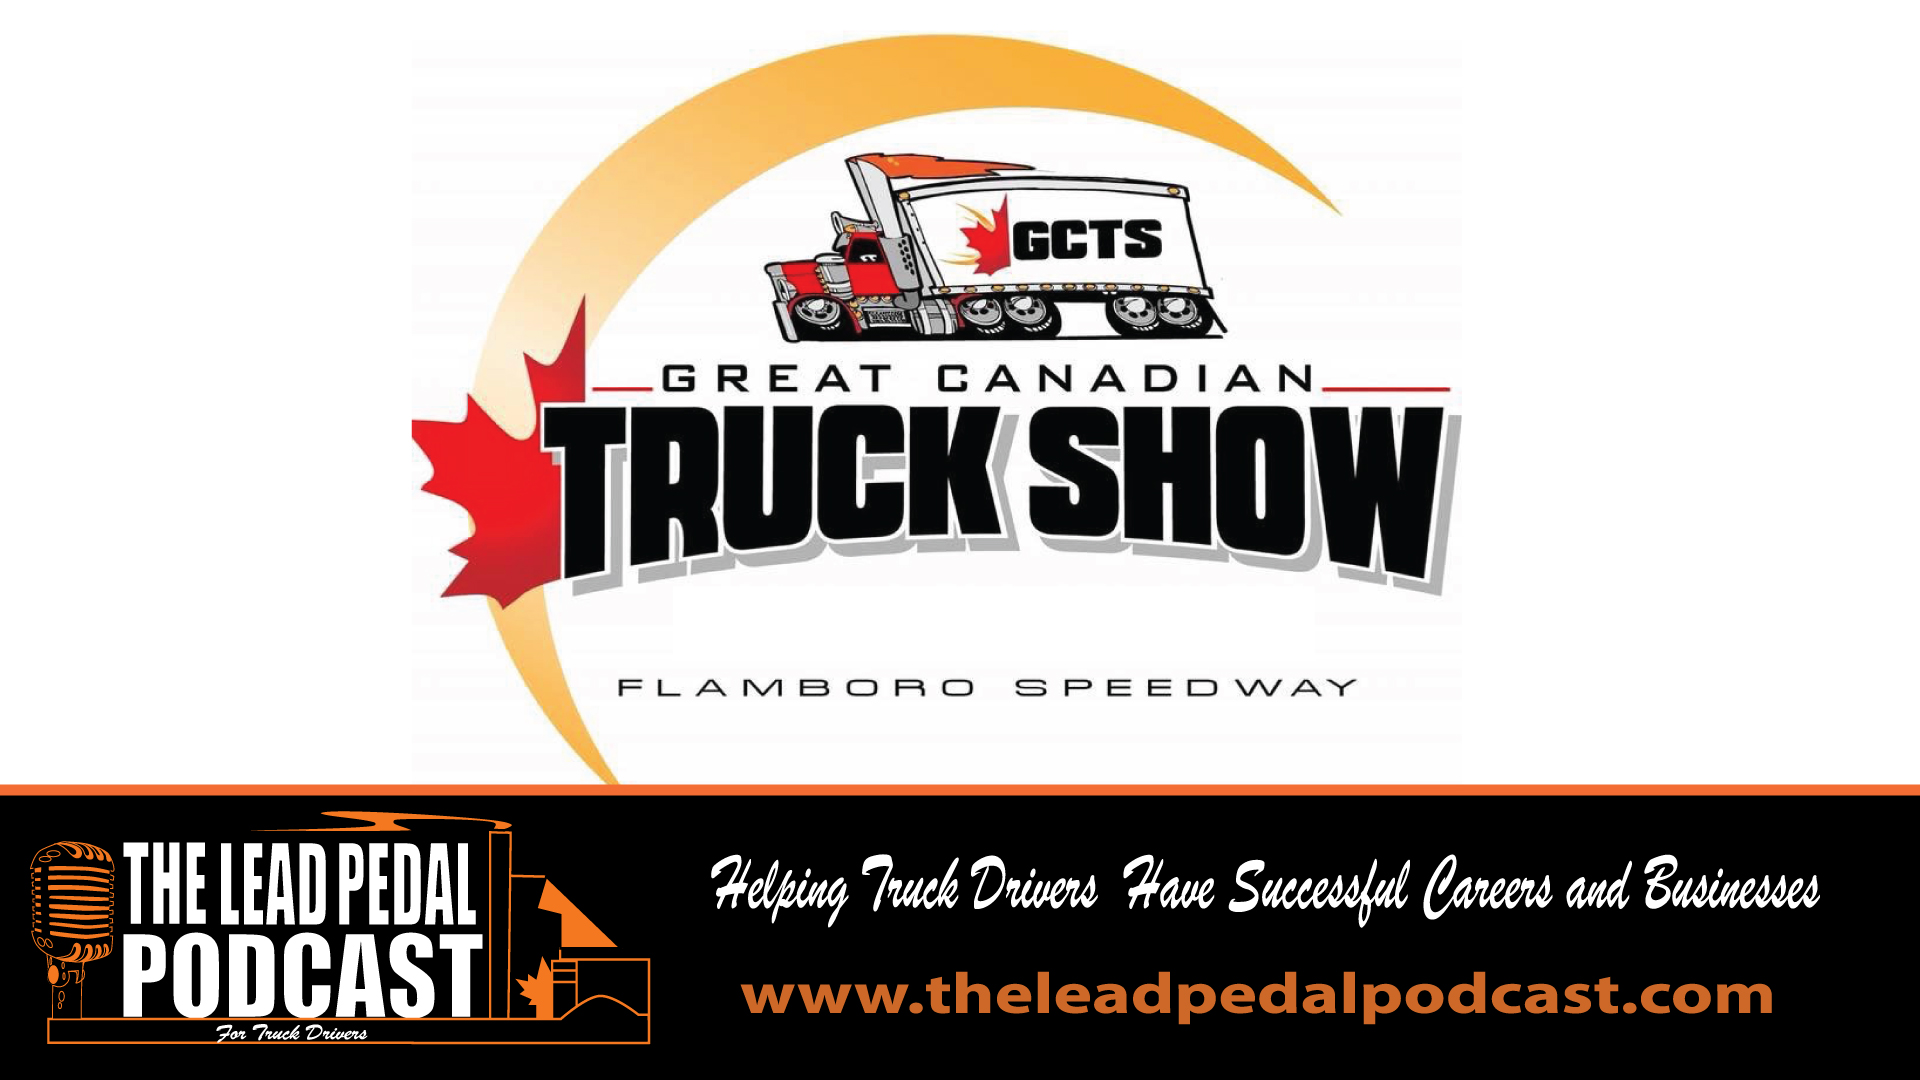 Great canadian Truck Show